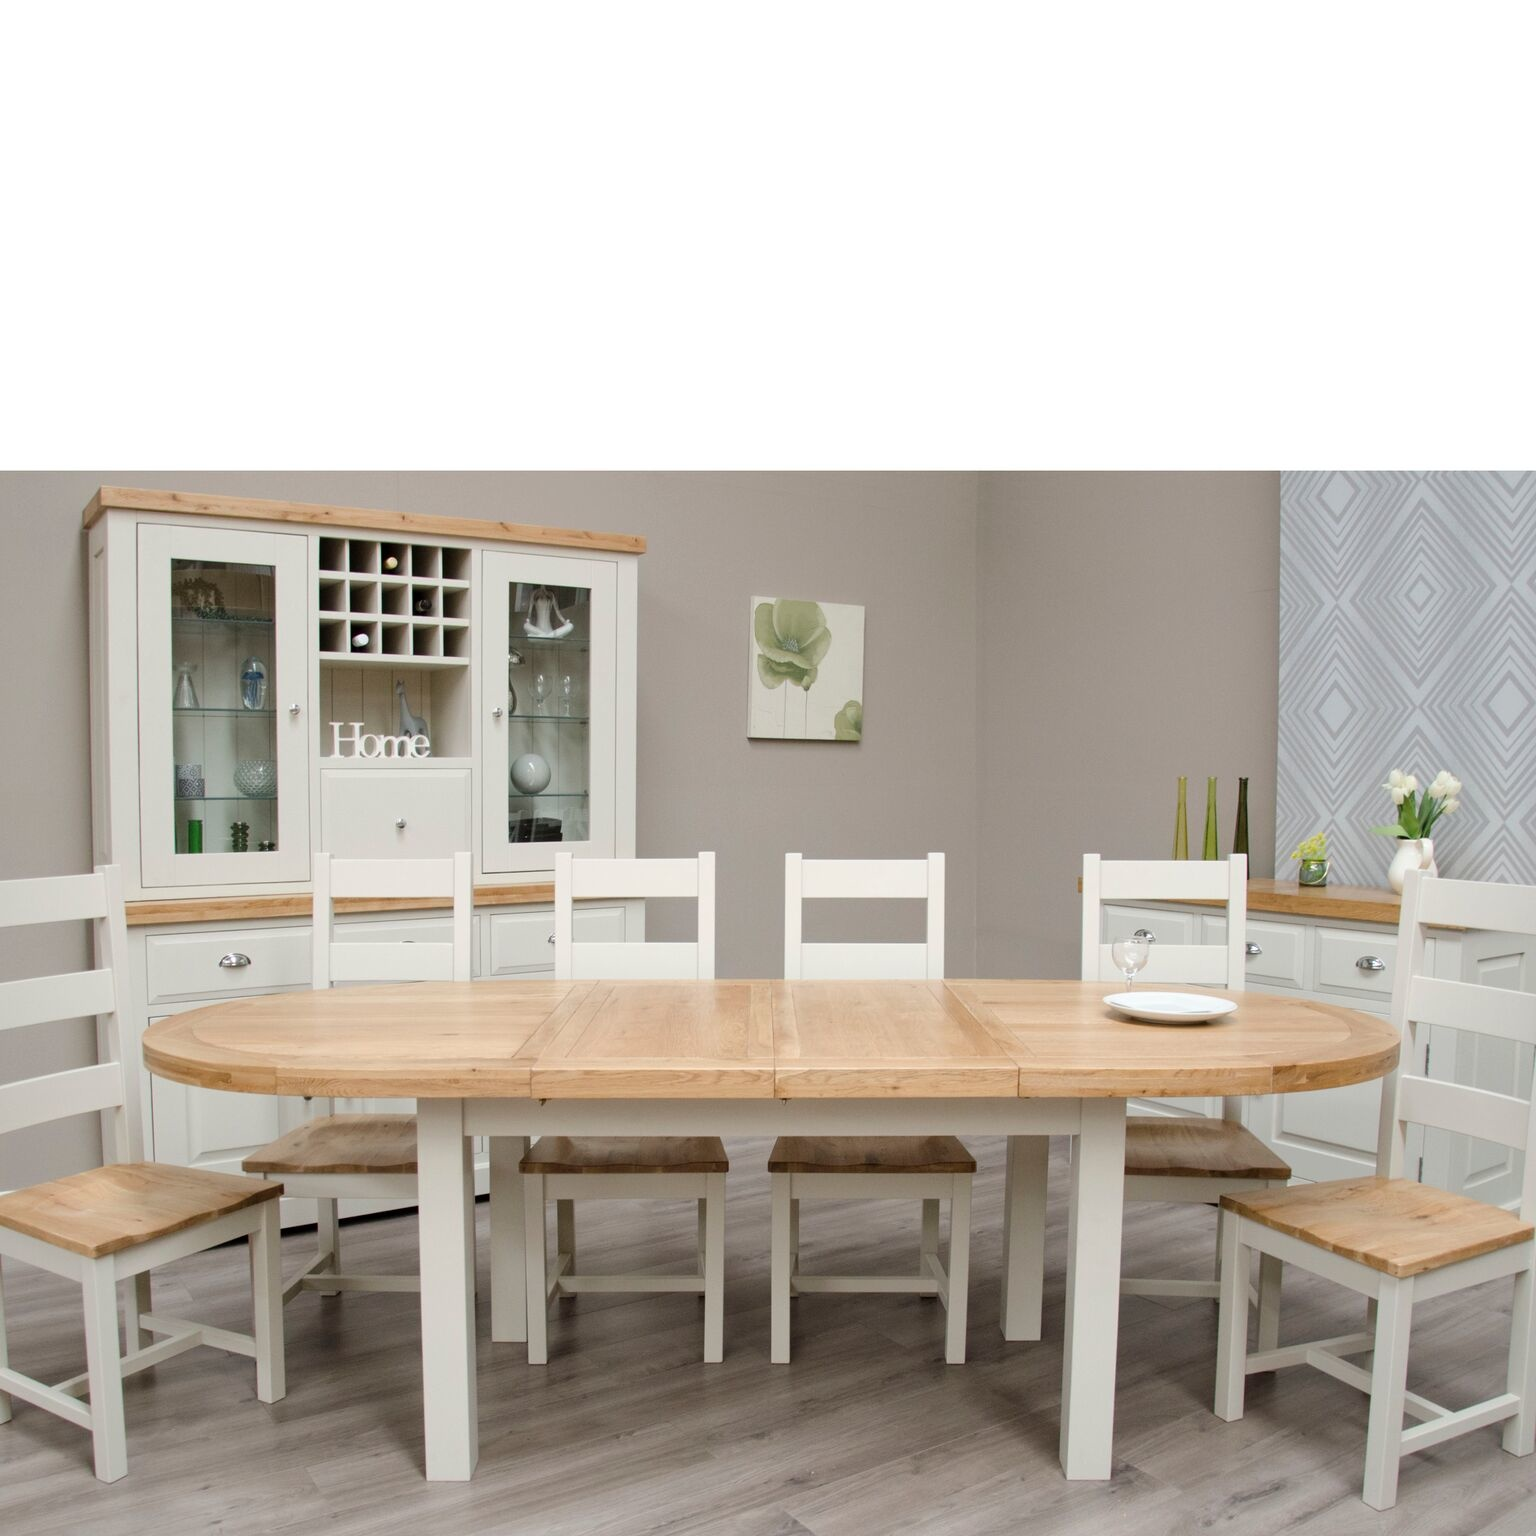 HomestyleGB Painted Deluxe Oval Extending Table